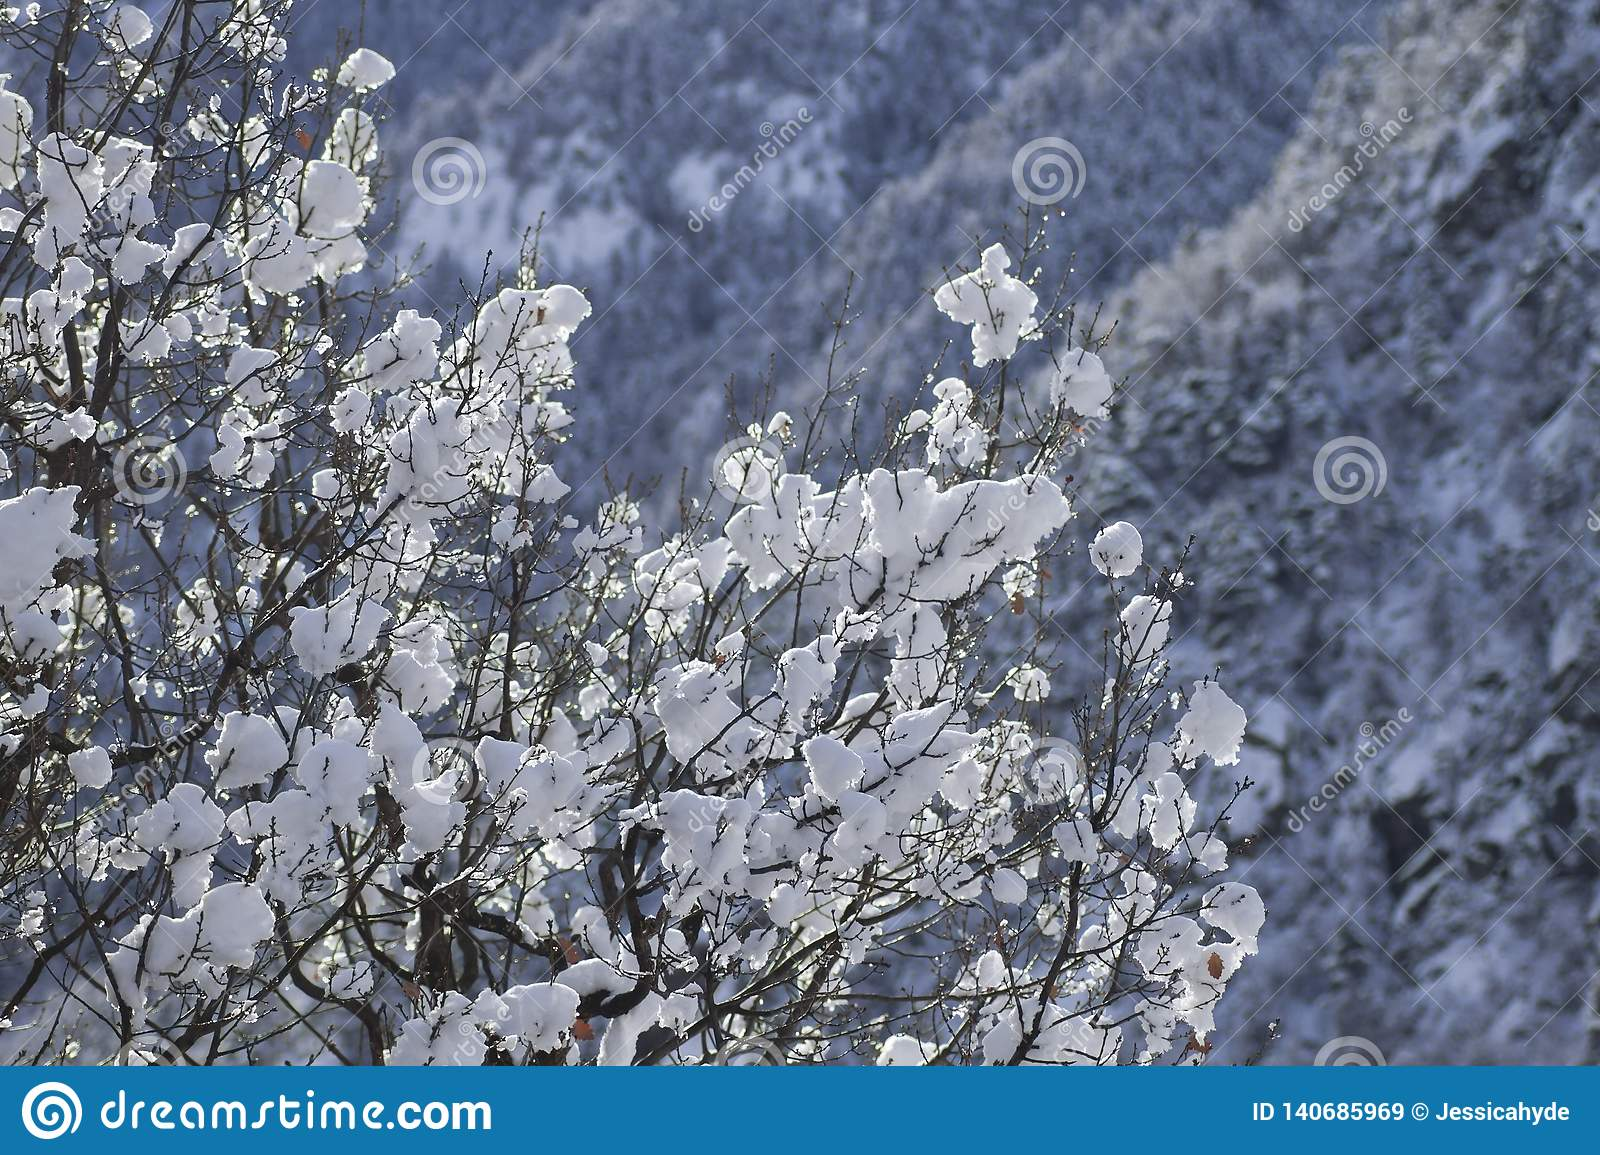 14 Snow Balls On The Branches Of A Tree Stock Image   Image of cold ...